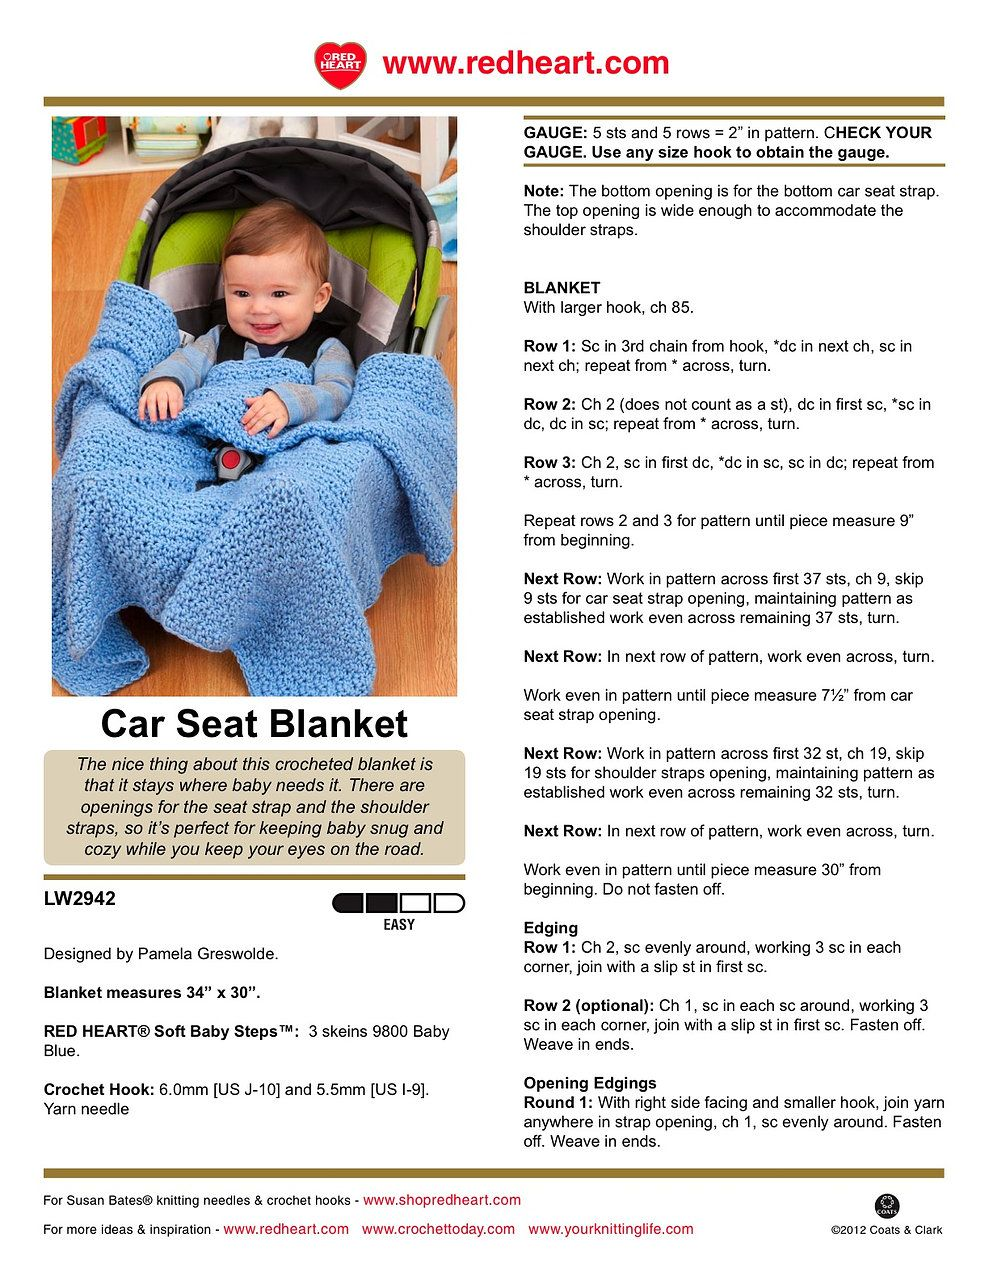 Car Seat Blanket Crochet Pattern Diy Car Seat Blankets Crochet